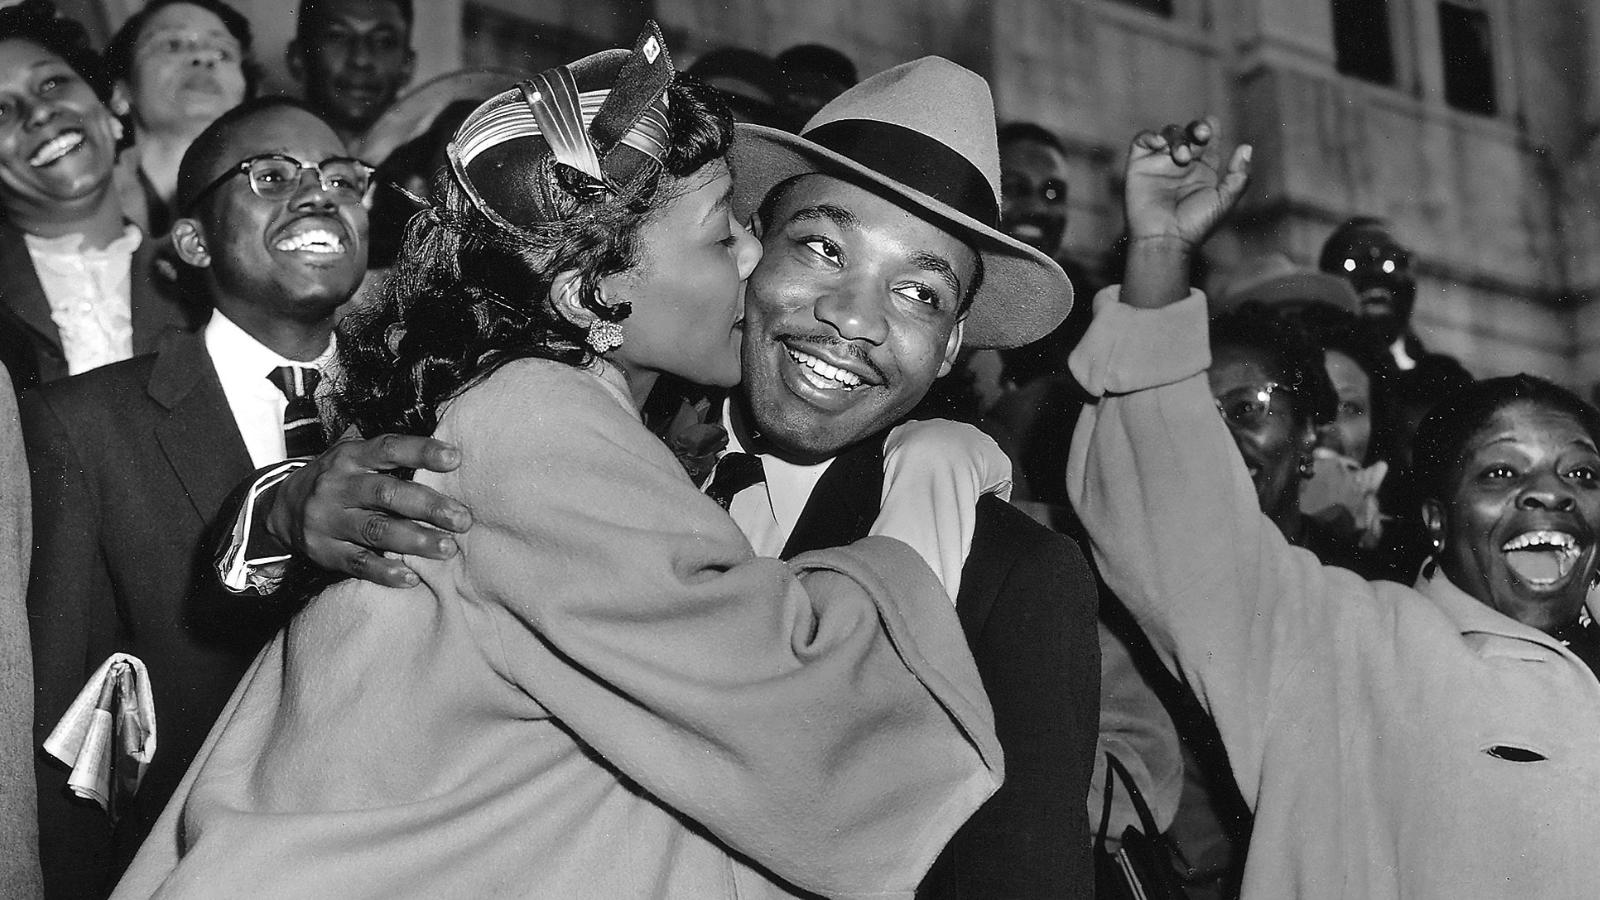 Coretta Scott King welcomes her husband, Dr. Martin Luther King, Jr